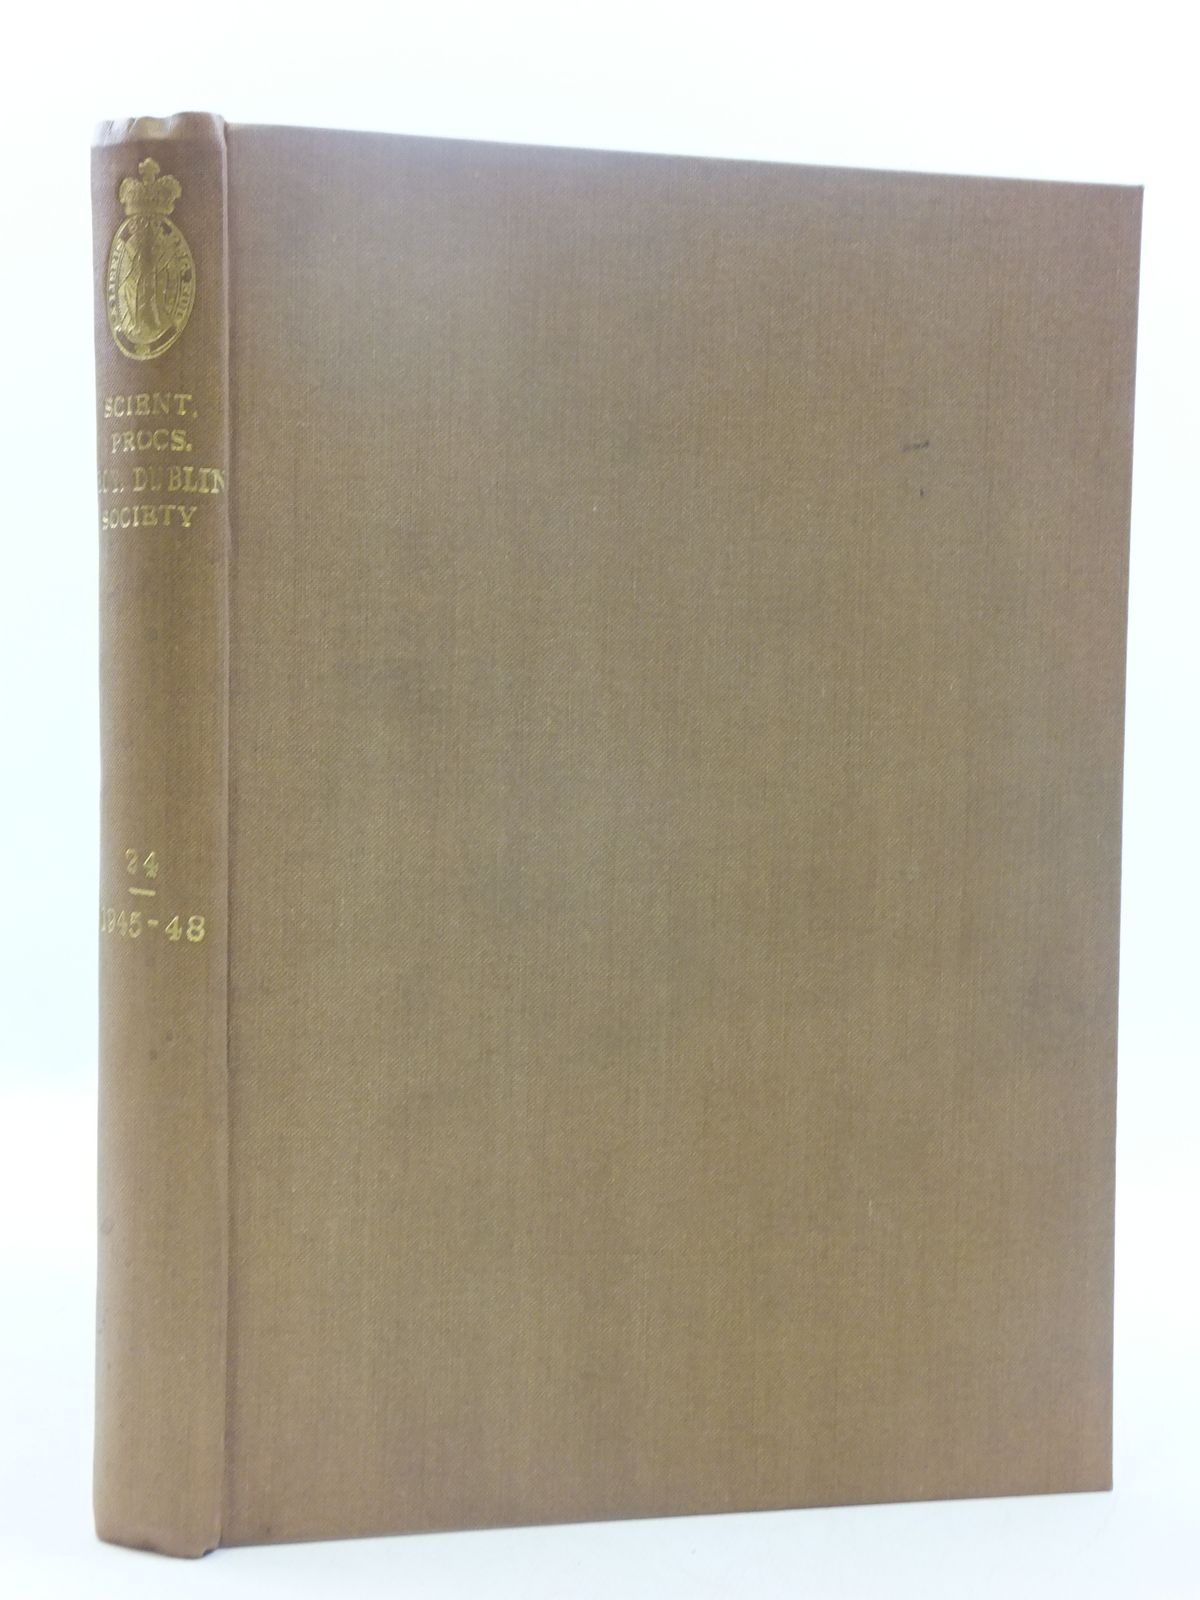 Photo of THE SCIENTIFIC PROCEEDINGS OF THE ROYAL DUBLIN SOCIETY VOLUME 24 (1945-48)